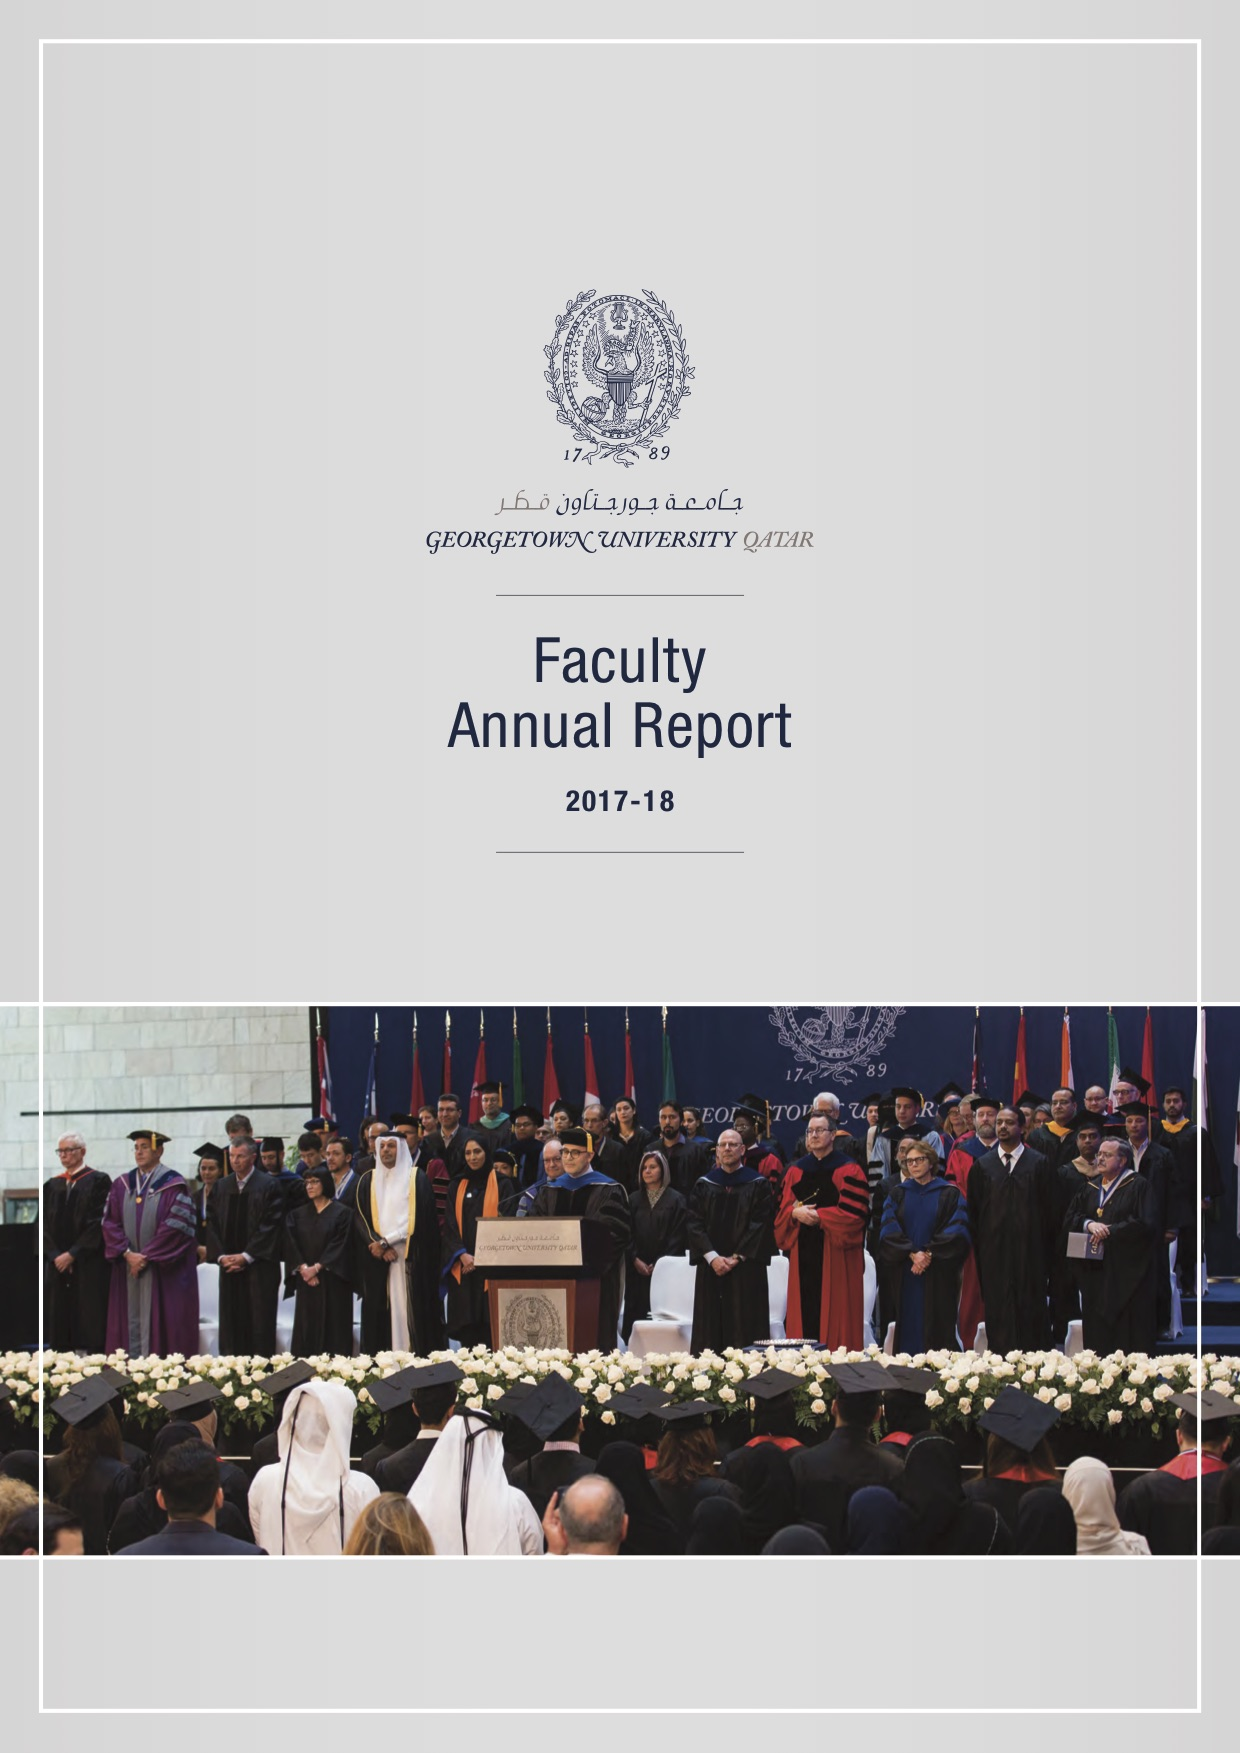 Faculty Annual Report 2017-2018